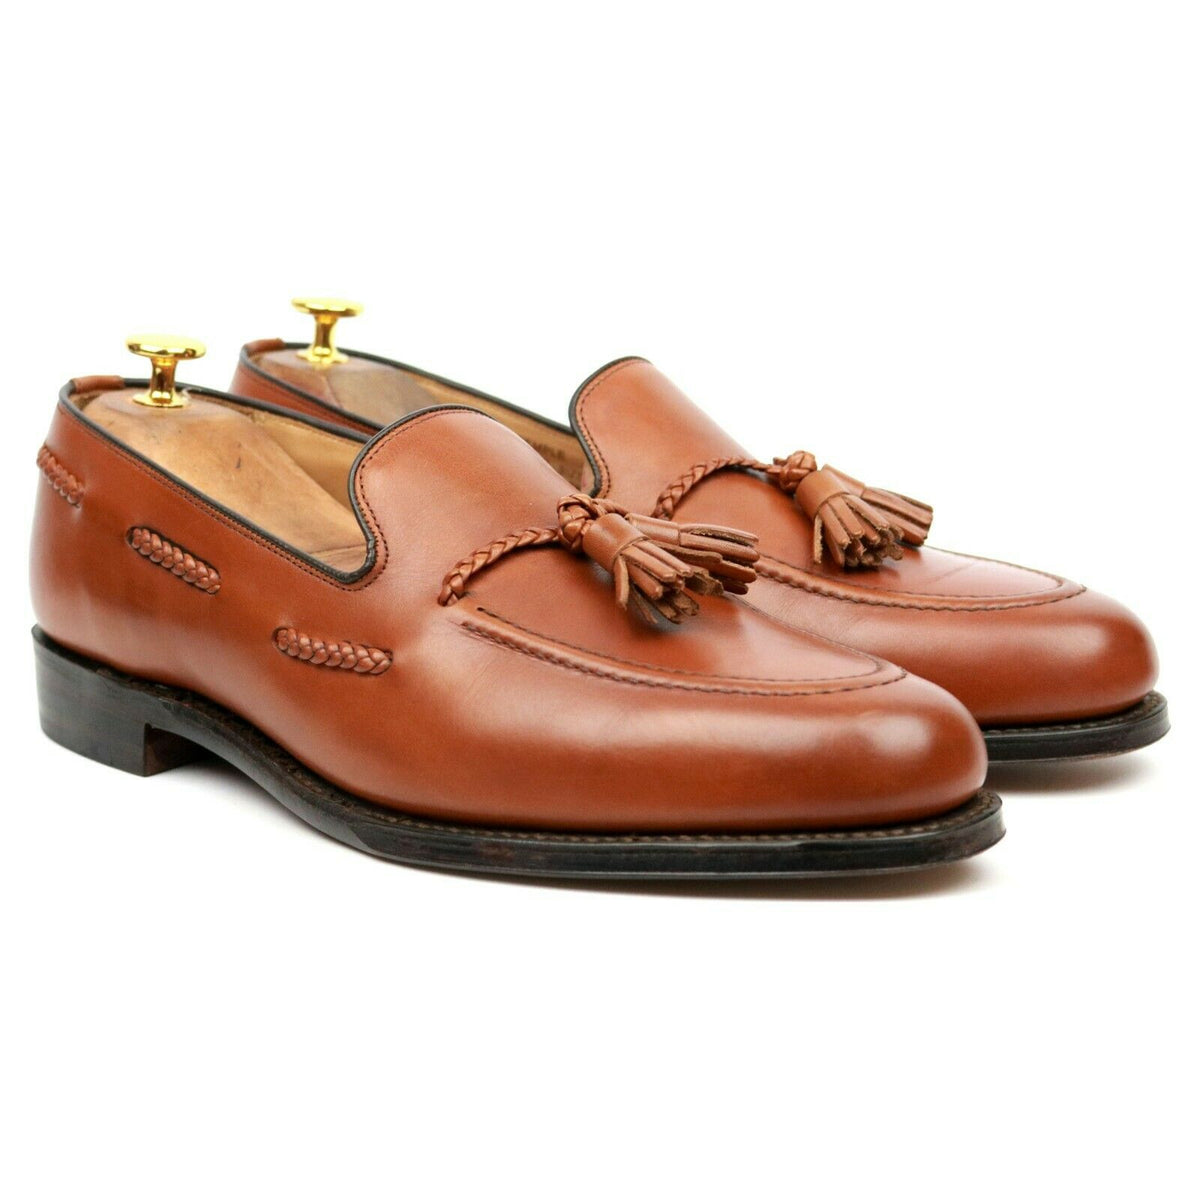 Loake 1880 'Temple' Tan Brown Leather Tassel Loafers UK 9 F